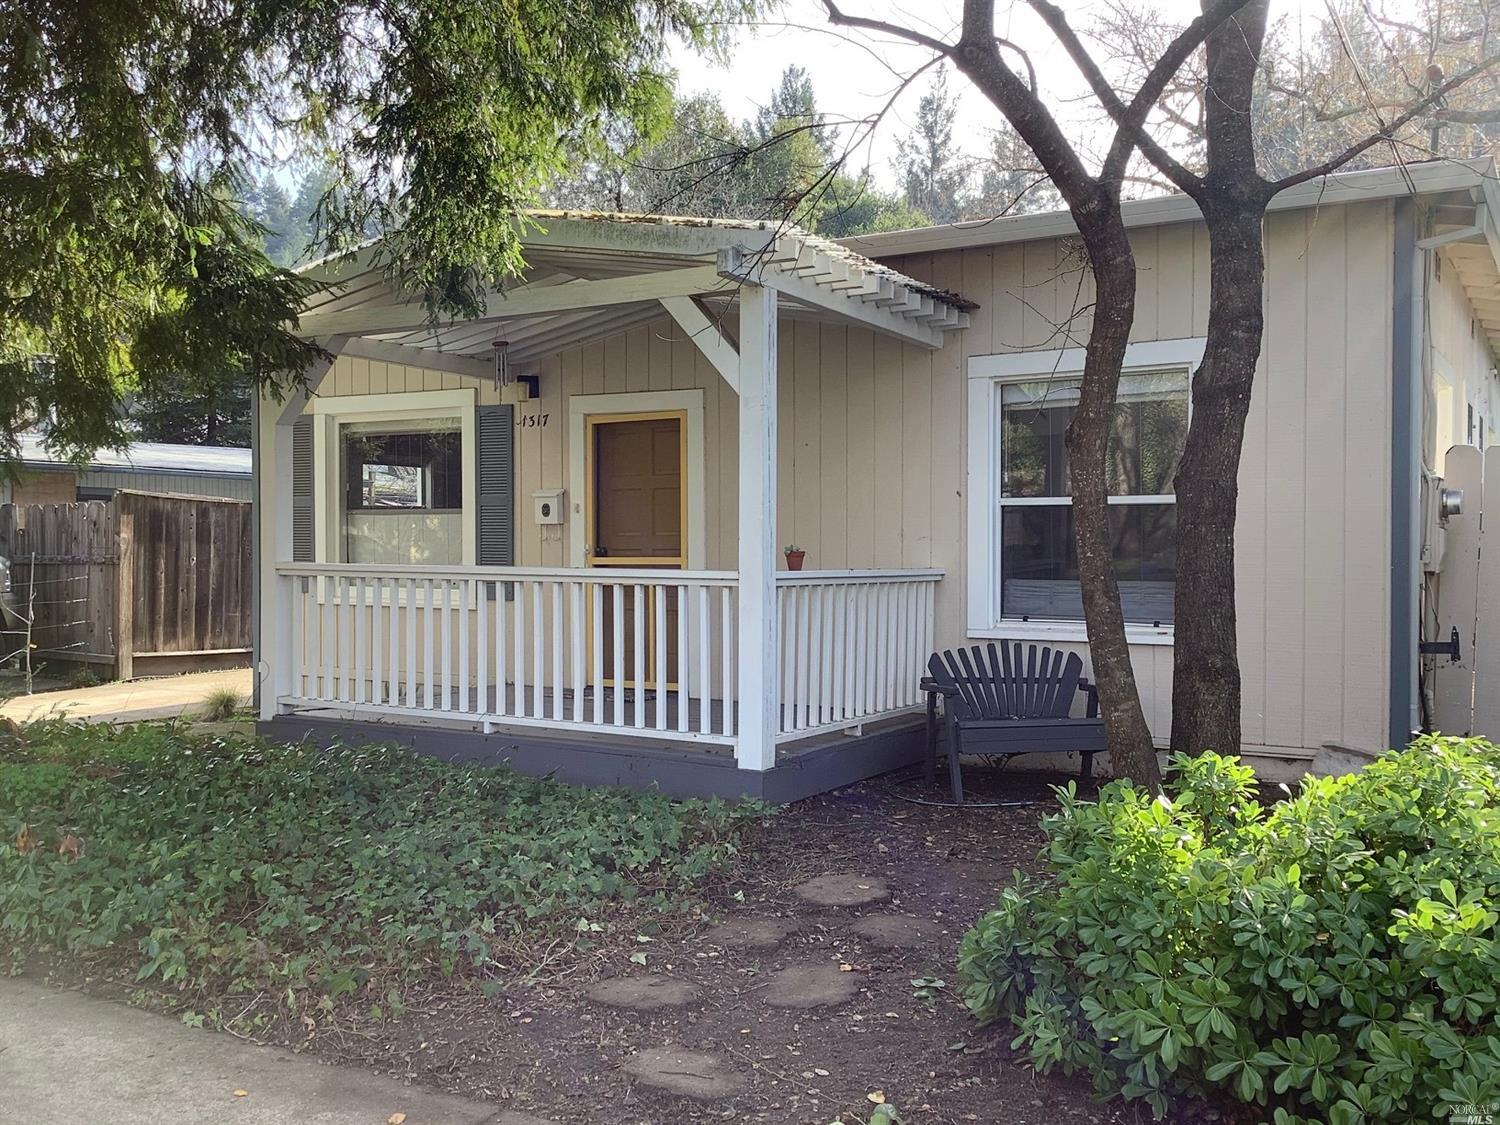 Heres your chance to own a Calistoga Bungalow just 2 blocks from downtown. This 2 bedroom, 2 bath, 1170 sq.ft home has a  large living room w/ wood burning fireplace and hardwood floors throughout, spacious kitchen with simulated stone counters and painted cabinets. Newer roof and gutters and a detached 1 car garage with an attached work shop that could possibly be an ideal ADU unit, check w/ City of Calistoga Planning Dept. A lot of the properties on Myrtle Street are undergoing remodeling or complete renovations/rebuilding. Property is zoned R3 and a majority of the value is in the land and water and sewer hookups.